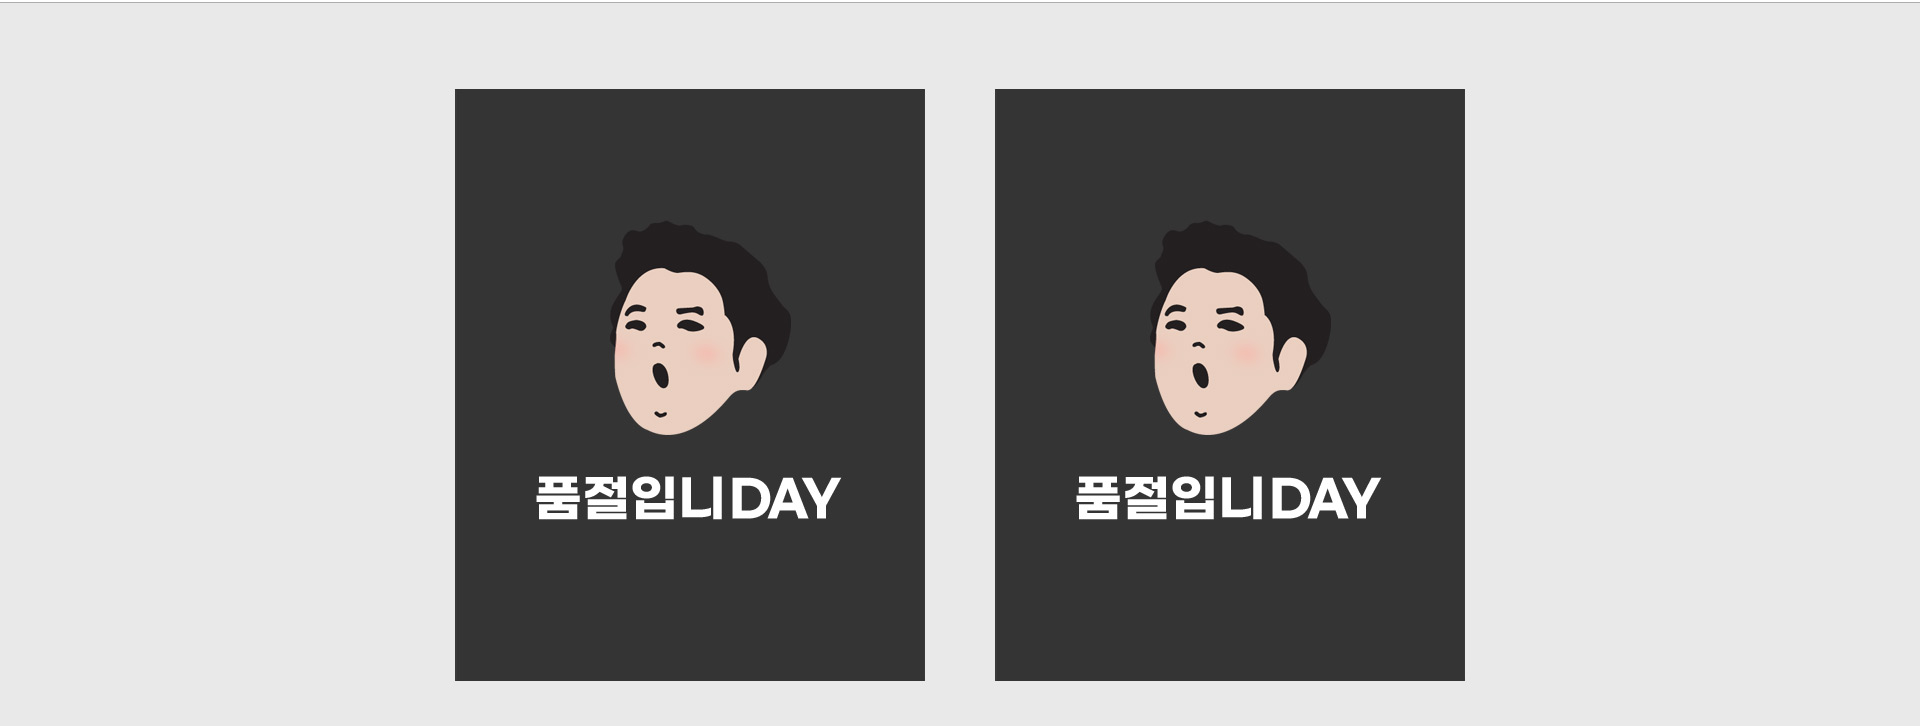 1day클라쓰